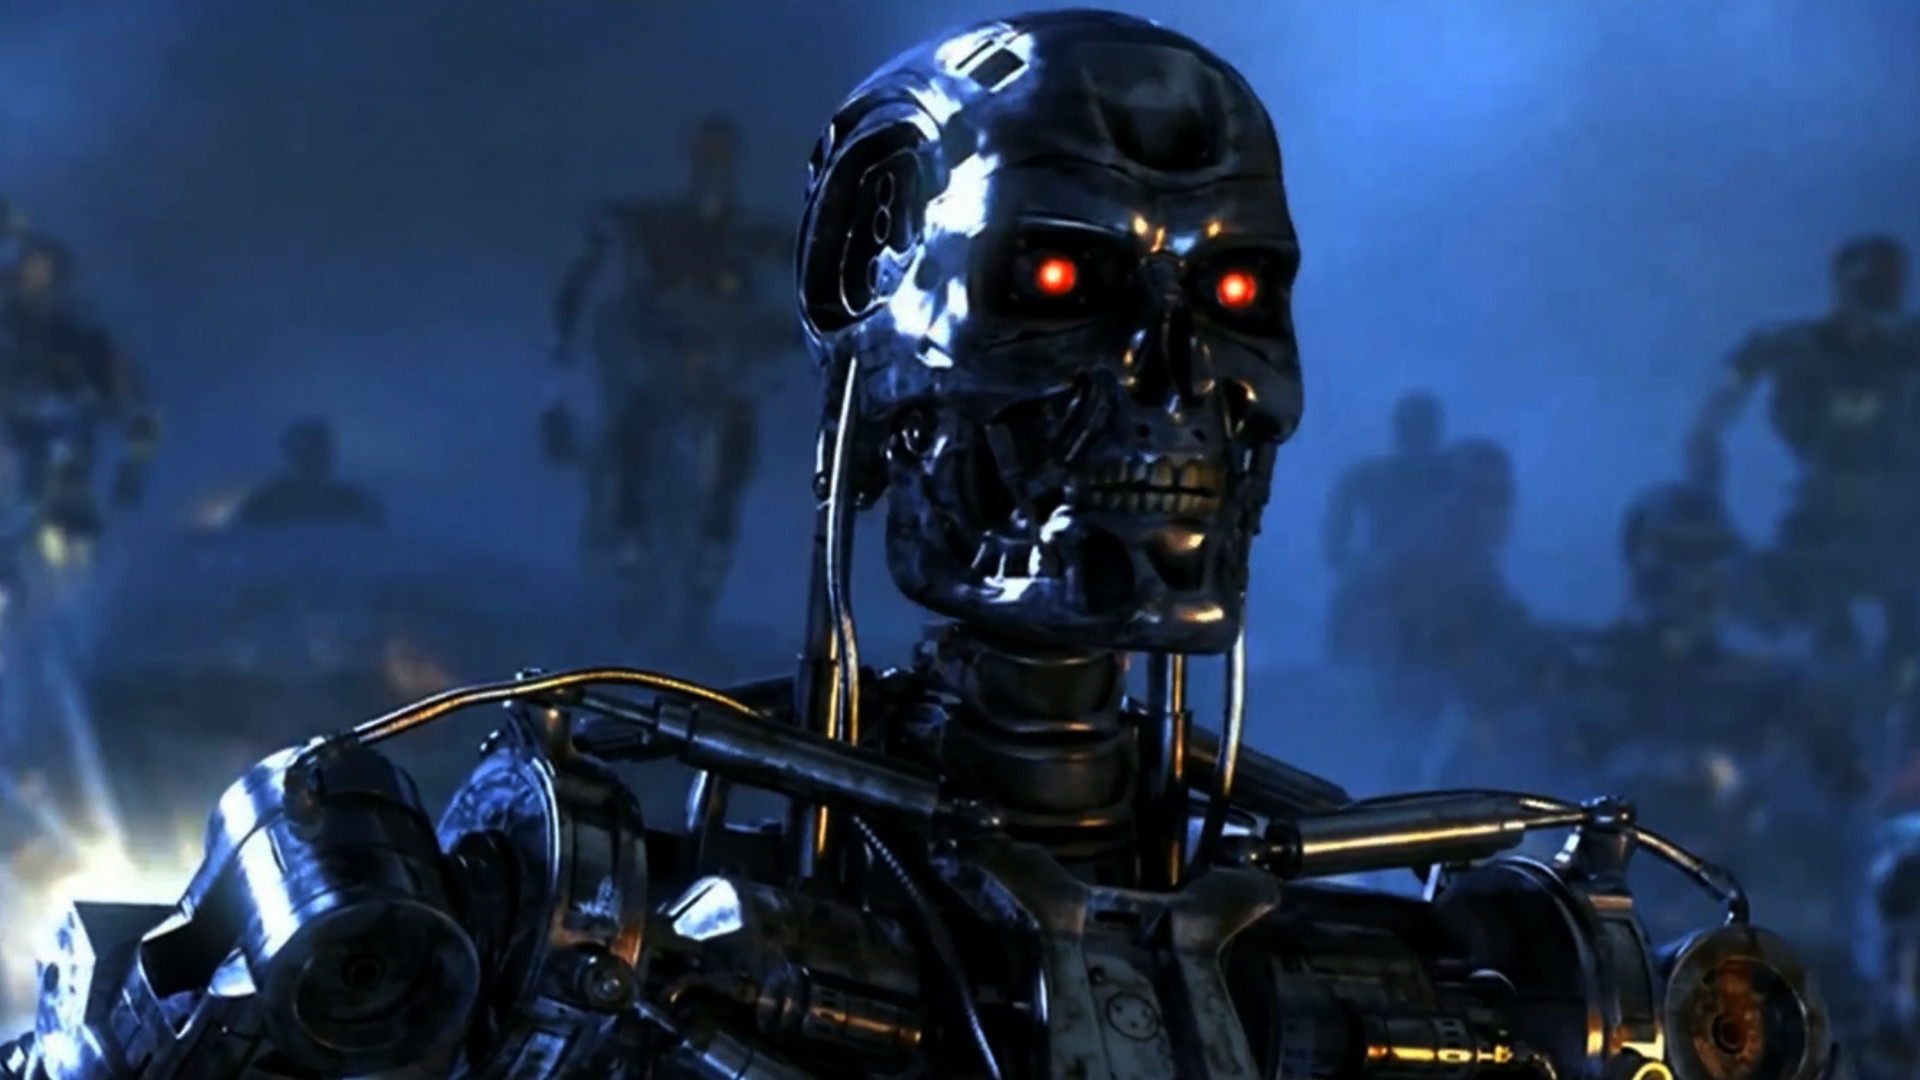 1920x1080 Terminator Genisys Full HD Wallpaper